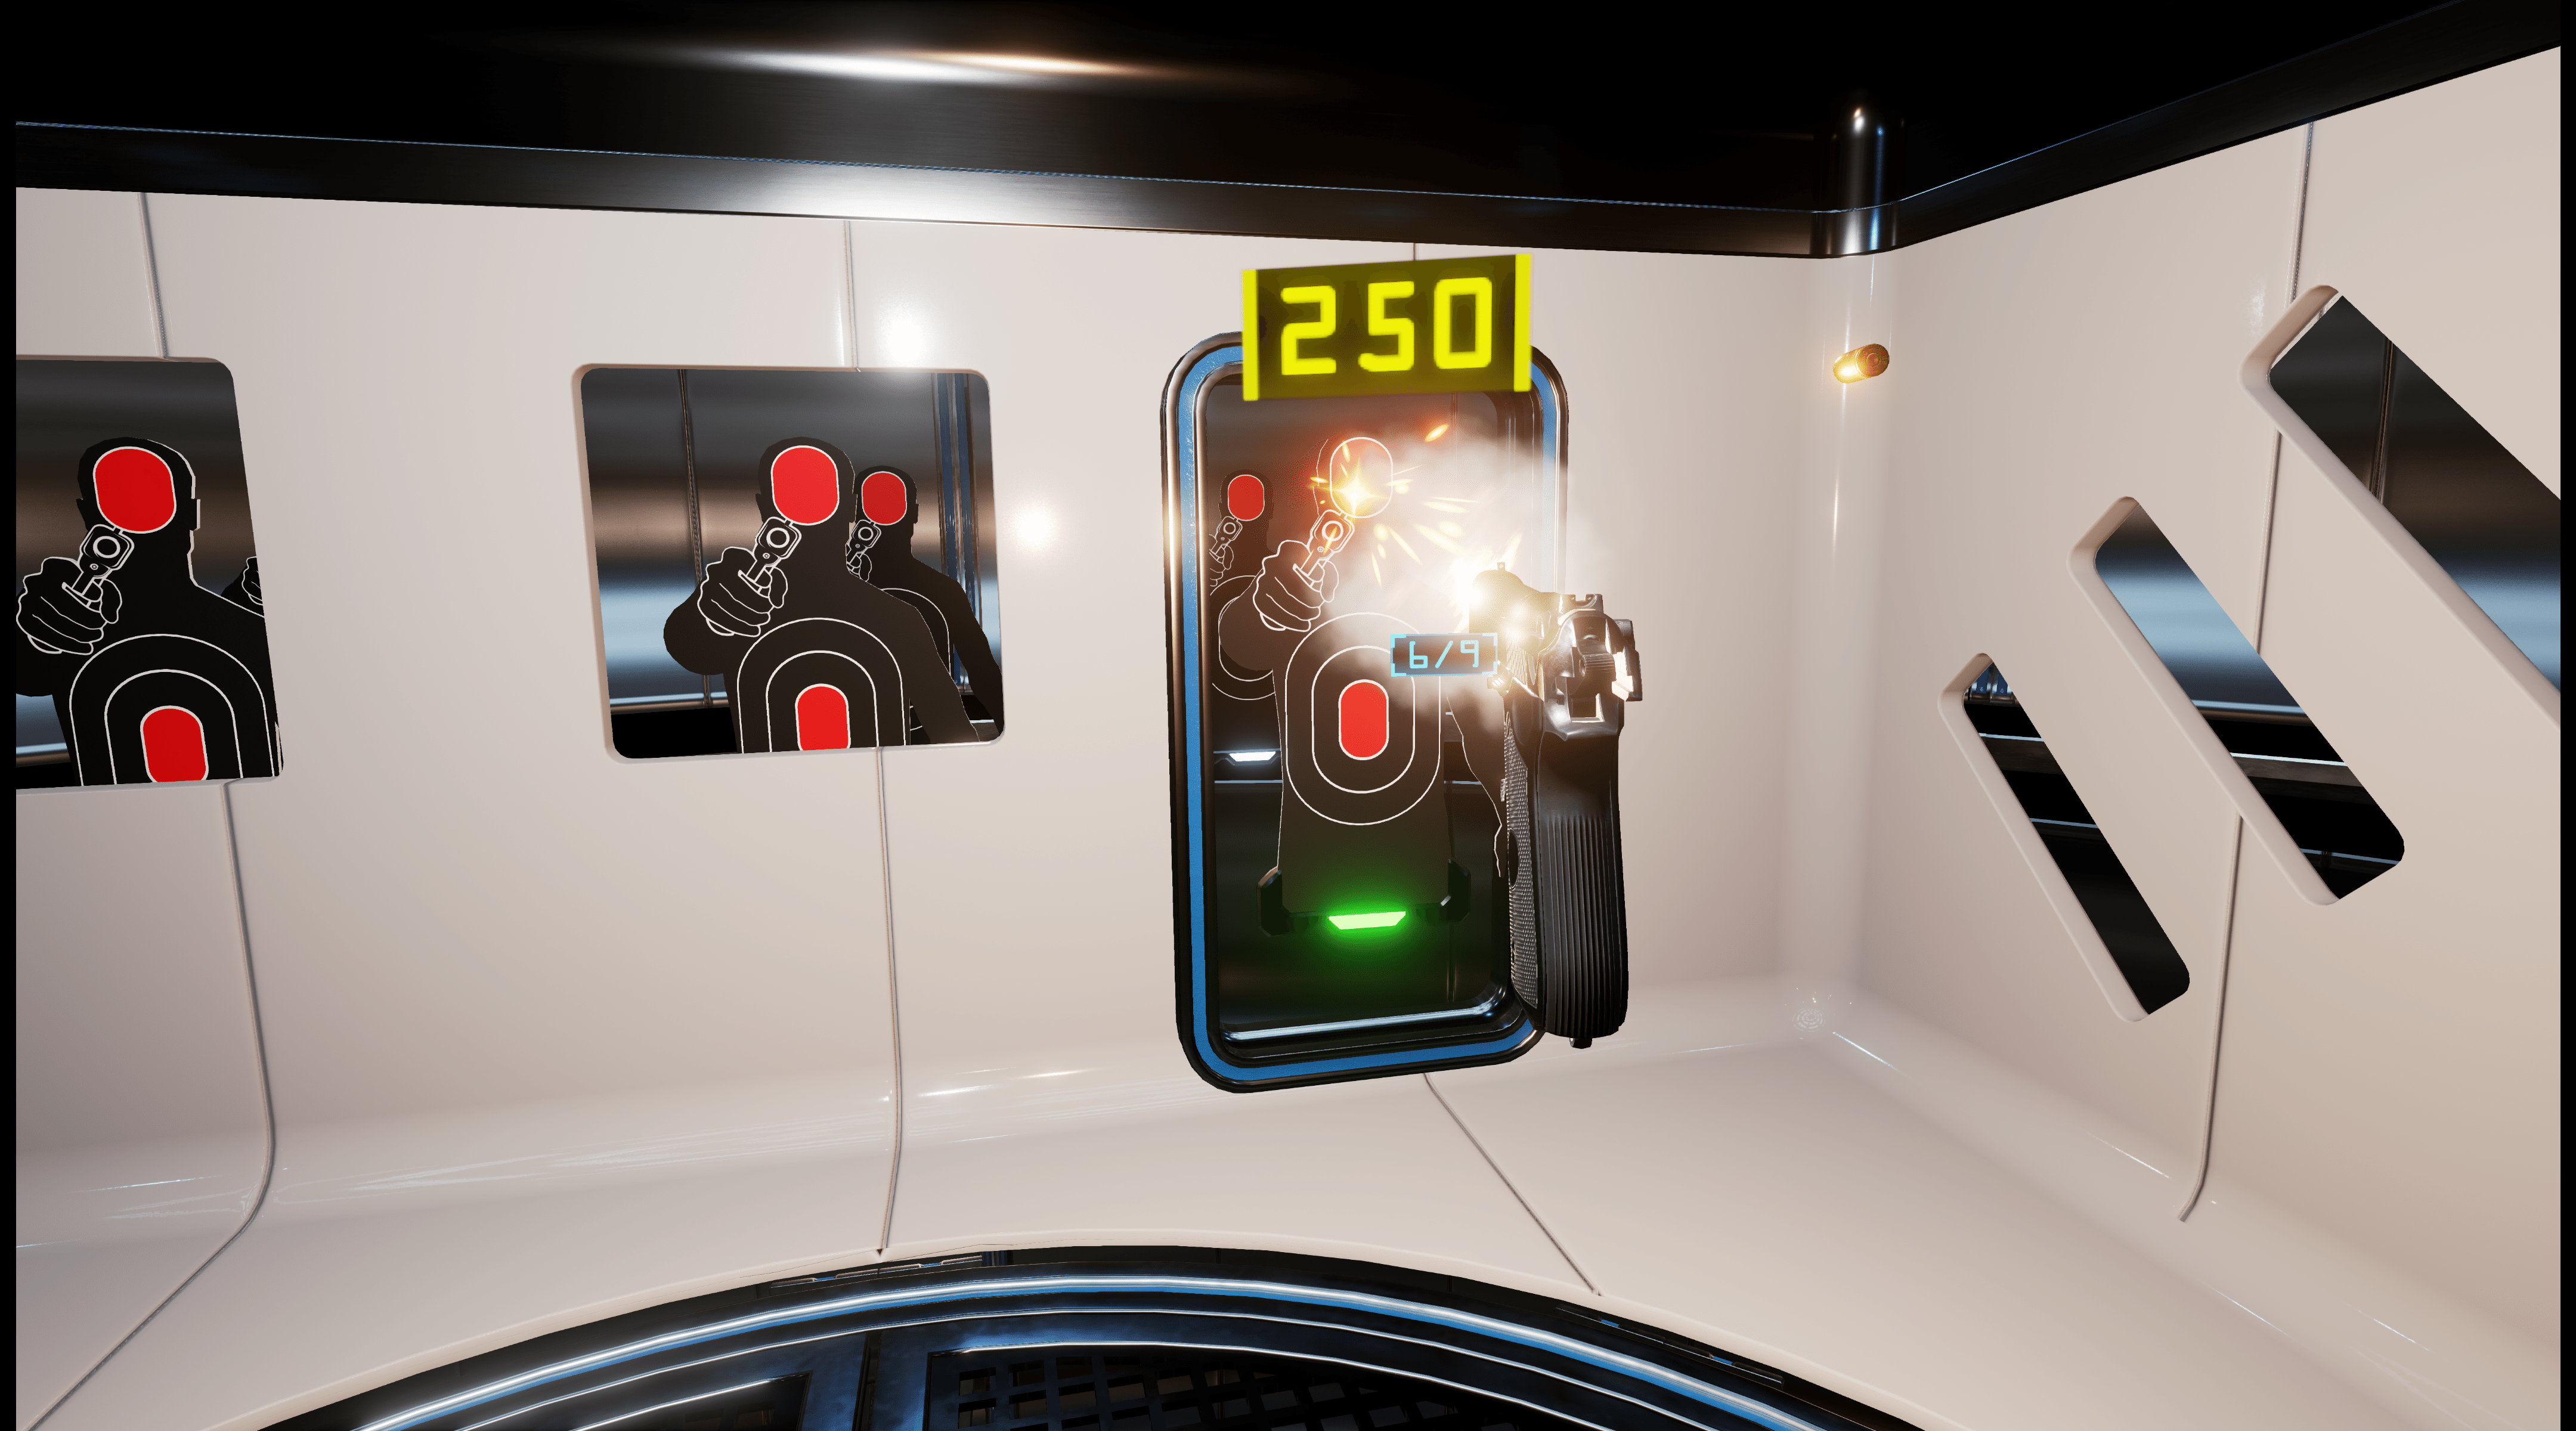 Lethal VR Launches Today for HTC Vive